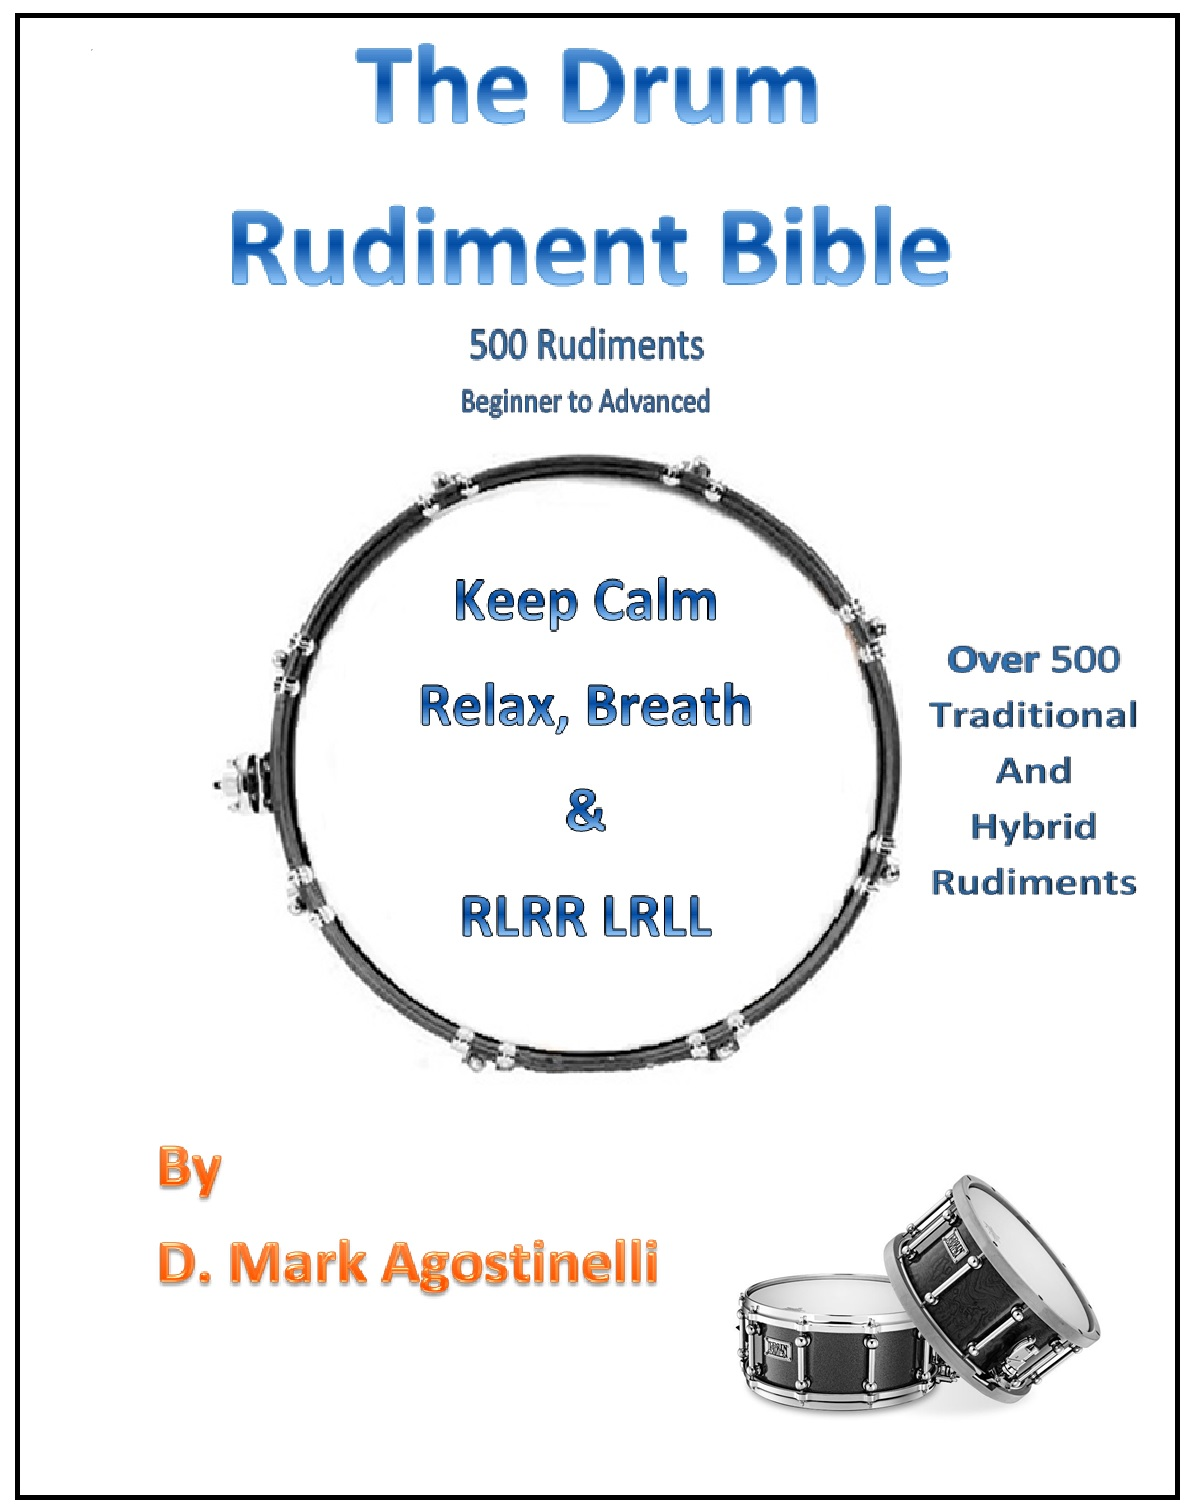 D Mark Agostinelli - The Drum Rudiment Bible 500 Rudiments